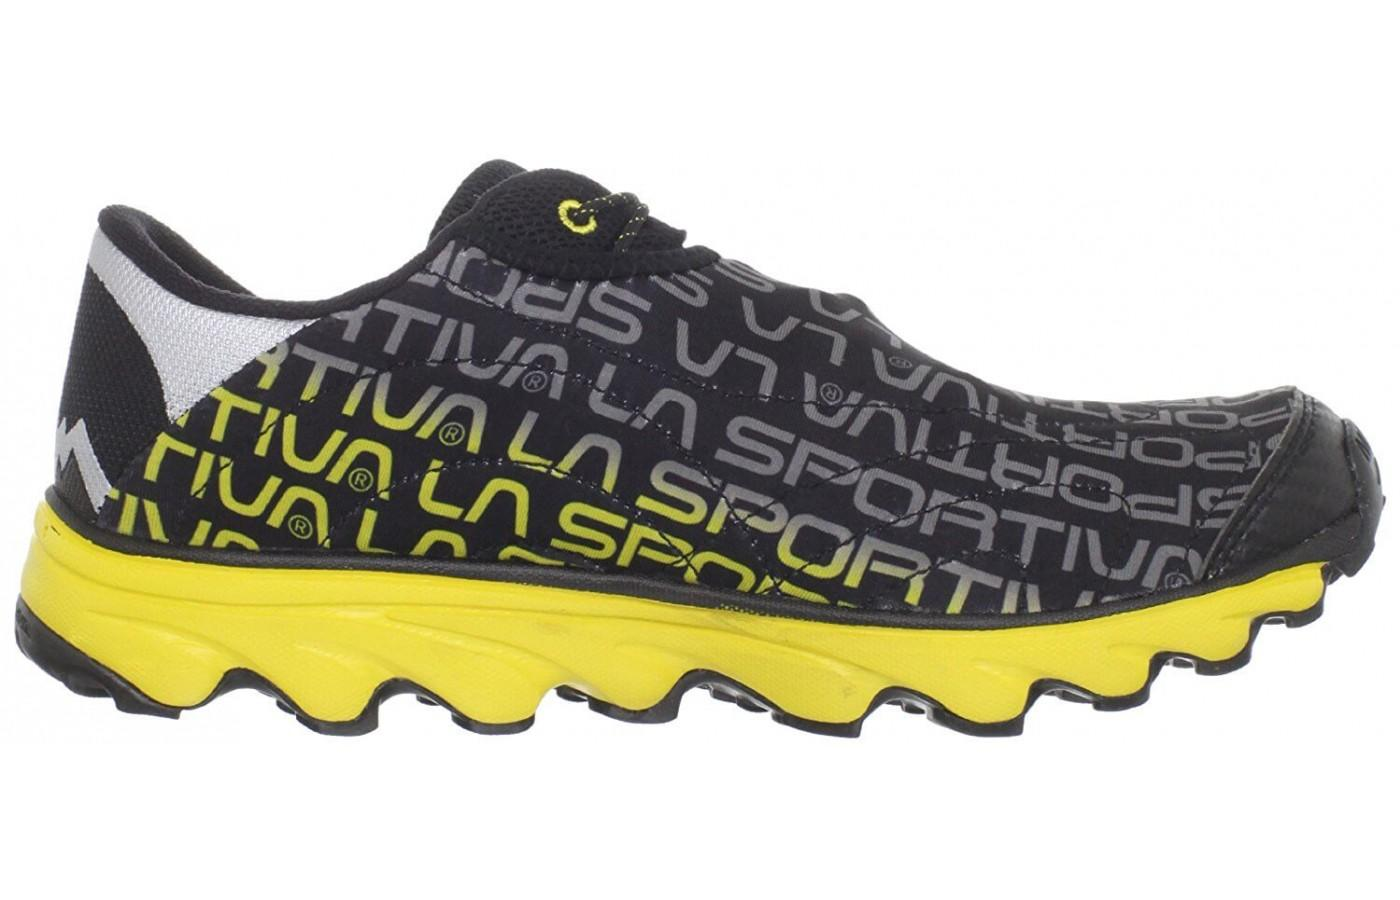 La Sportiva bold yellow and black coloring